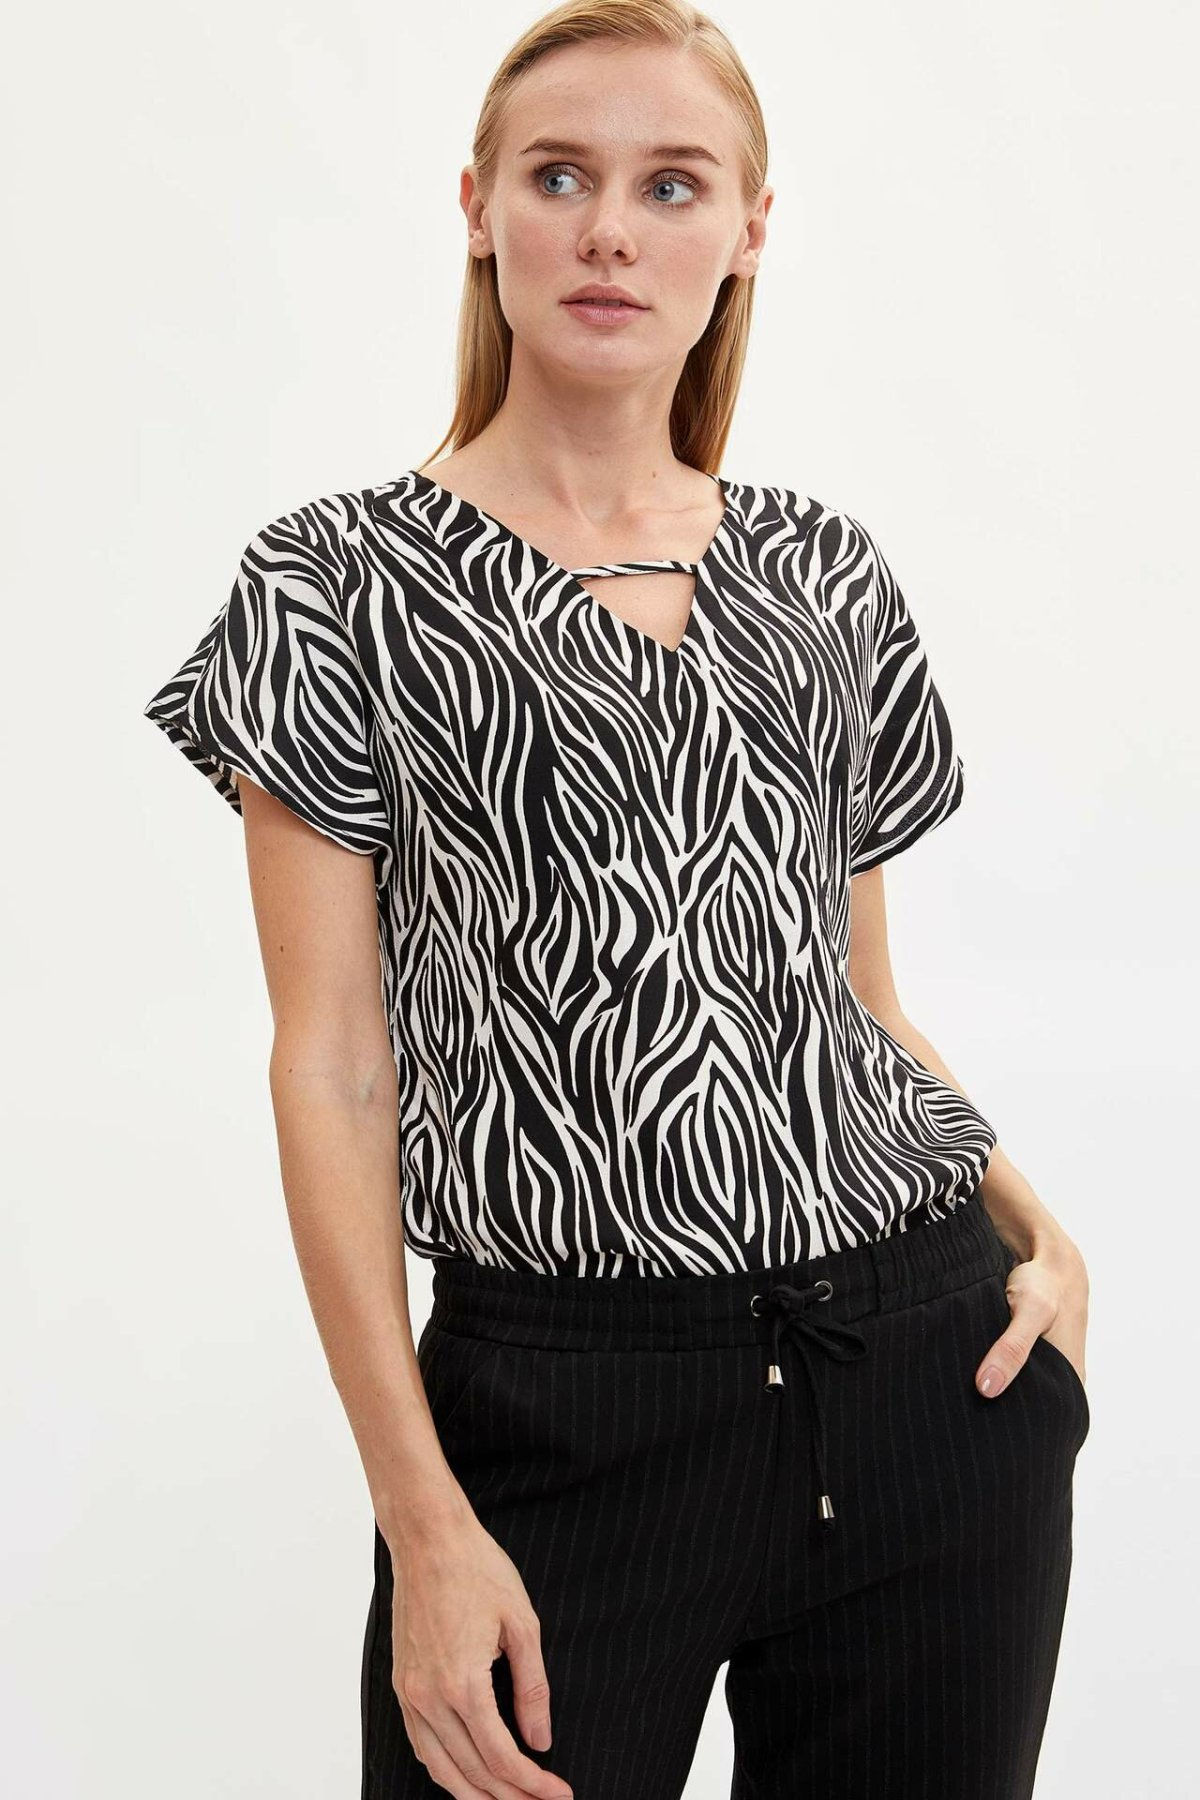 DeFacto Woman Summer White Black Striped Blouse Women Casual V-neck Shirts Lady Short Sleeve Blouse-M1949AZ19AU